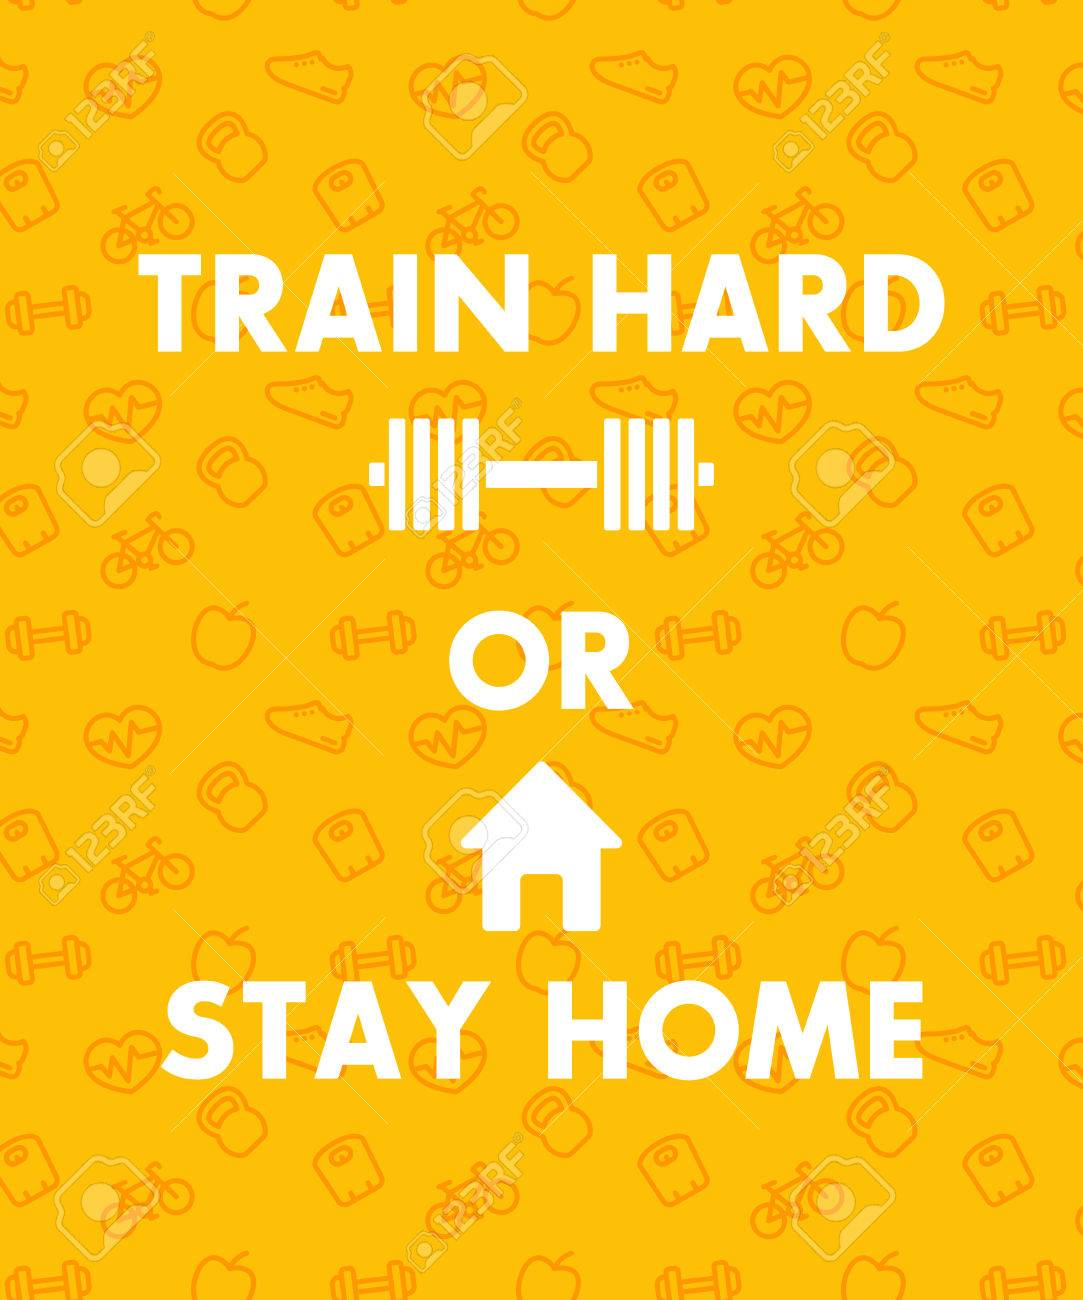 train hard or stay home, fitness club, gym poster design, illustration